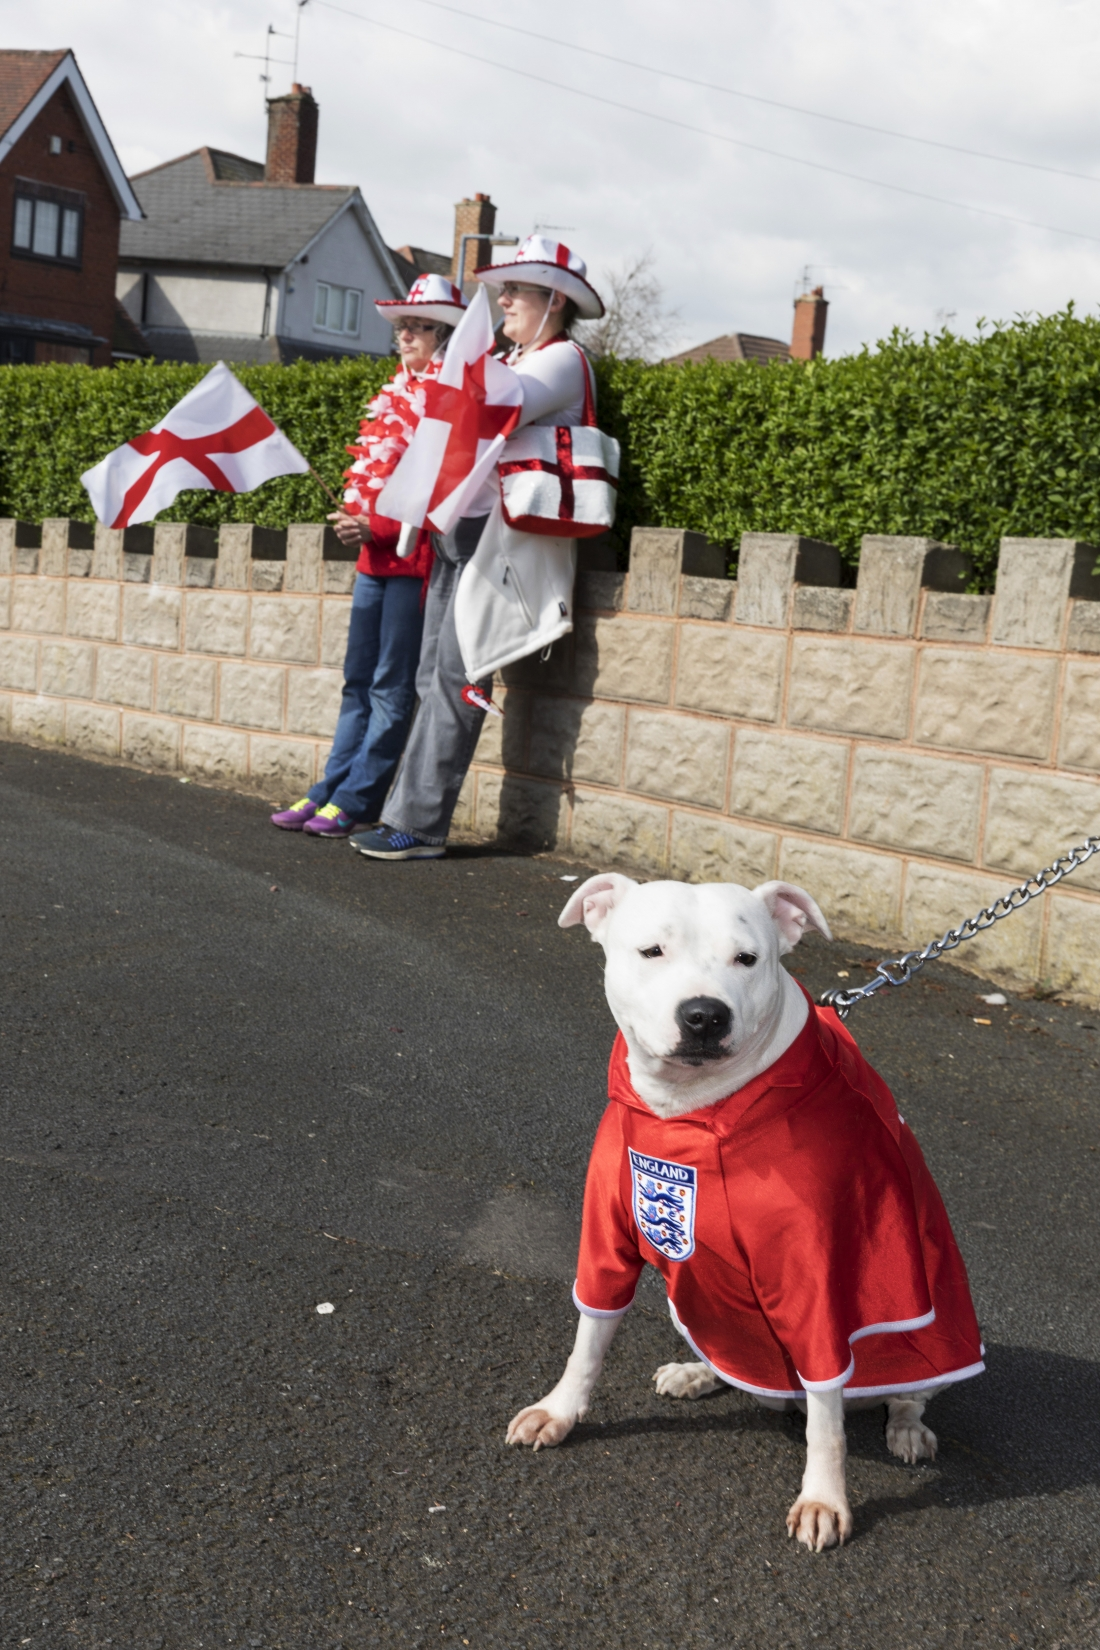 St George's Day, Stone Cross Parade, West Bromwich, 2017. © Martin Parr